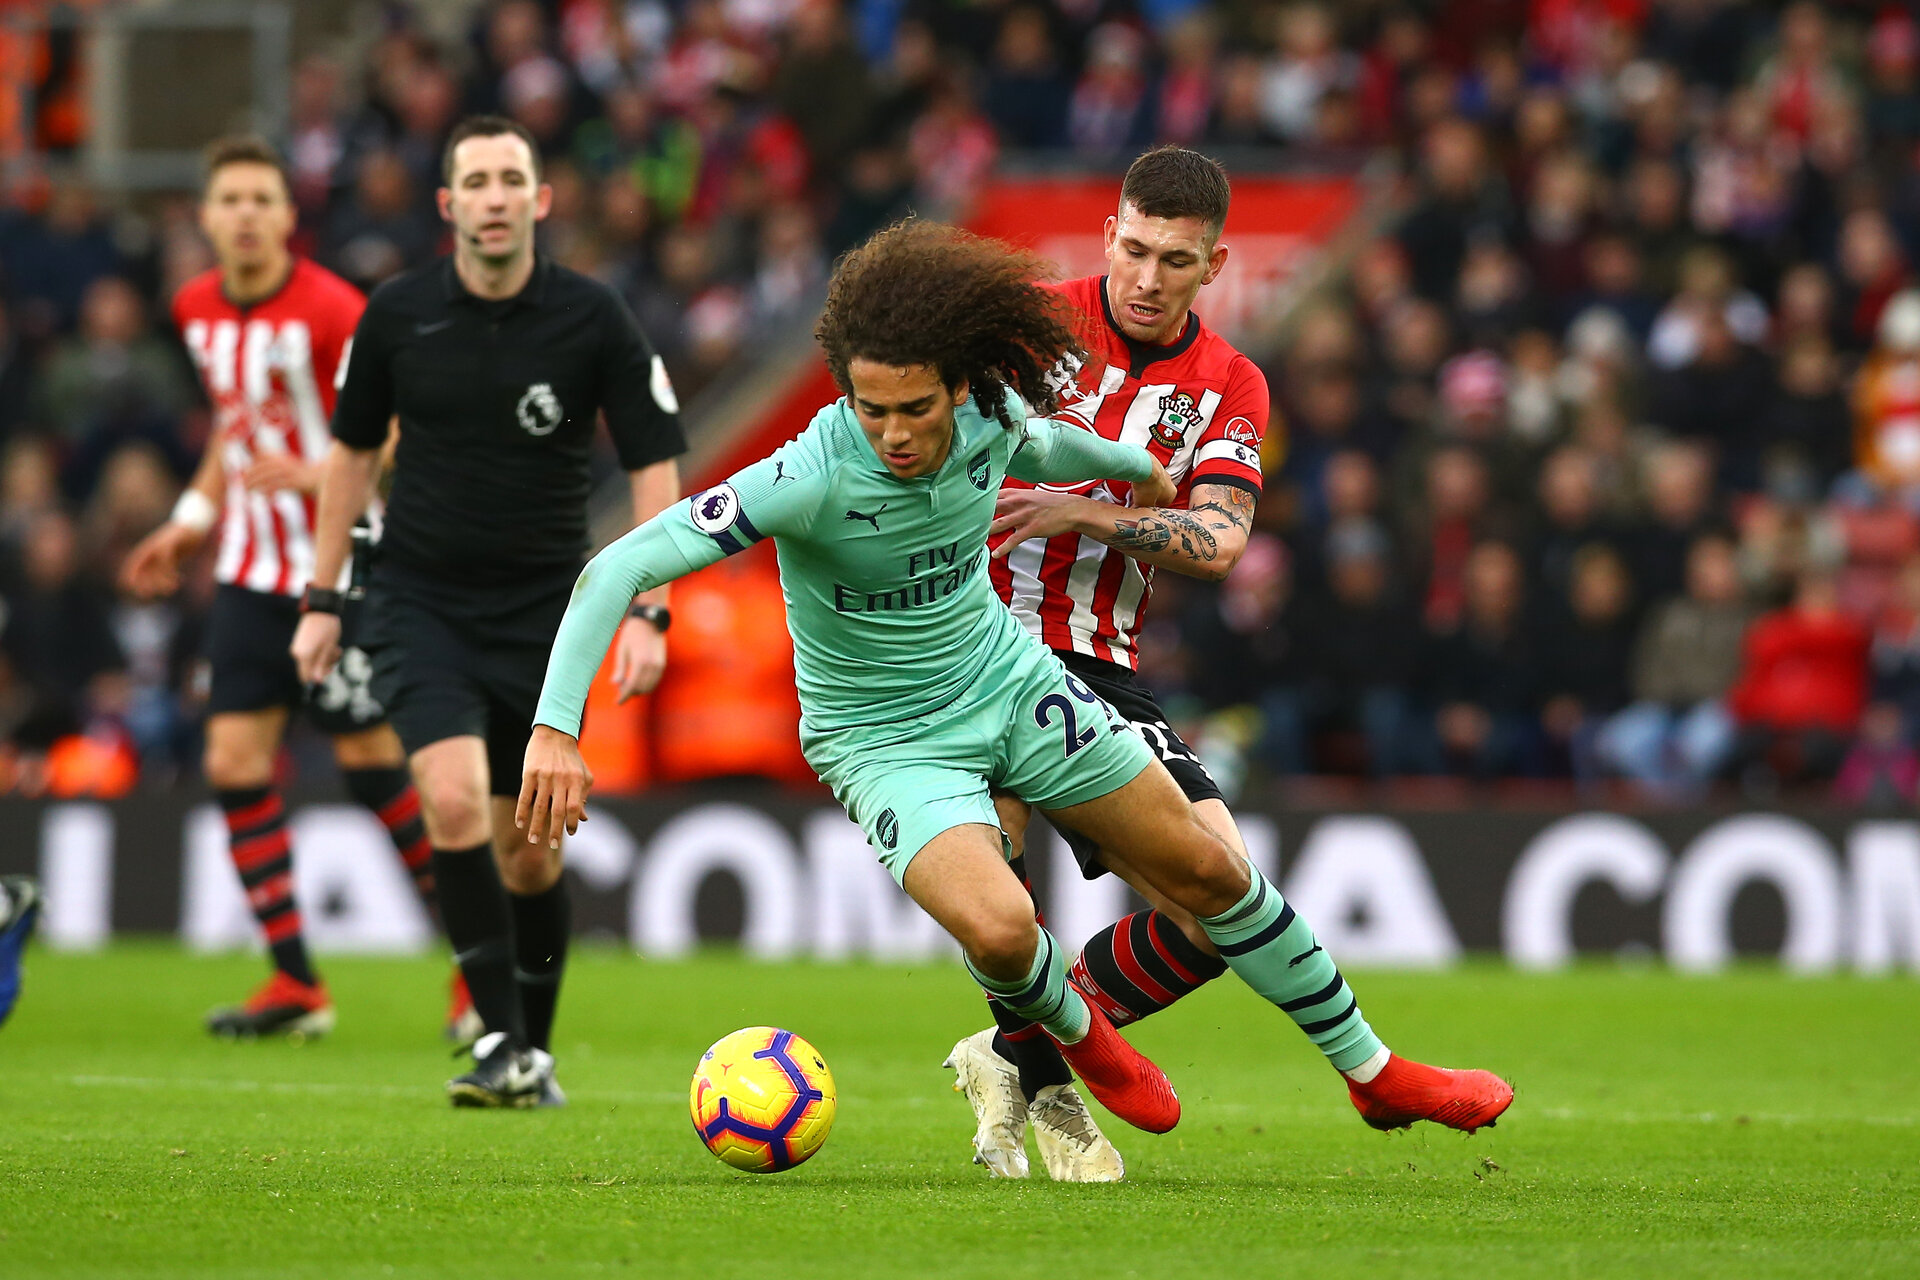 SOUTHAMPTON, ENGLAND - DECEMBER 16: Pierre-Emile Højbjerg (right) during the Premier League match between Southampton FC and Arsenal FC at St Mary's Stadium on December 16, 2018 in Southampton, United Kingdom. (Photo by James Bridle - Southampton FC/Southampton FC via Getty Images)